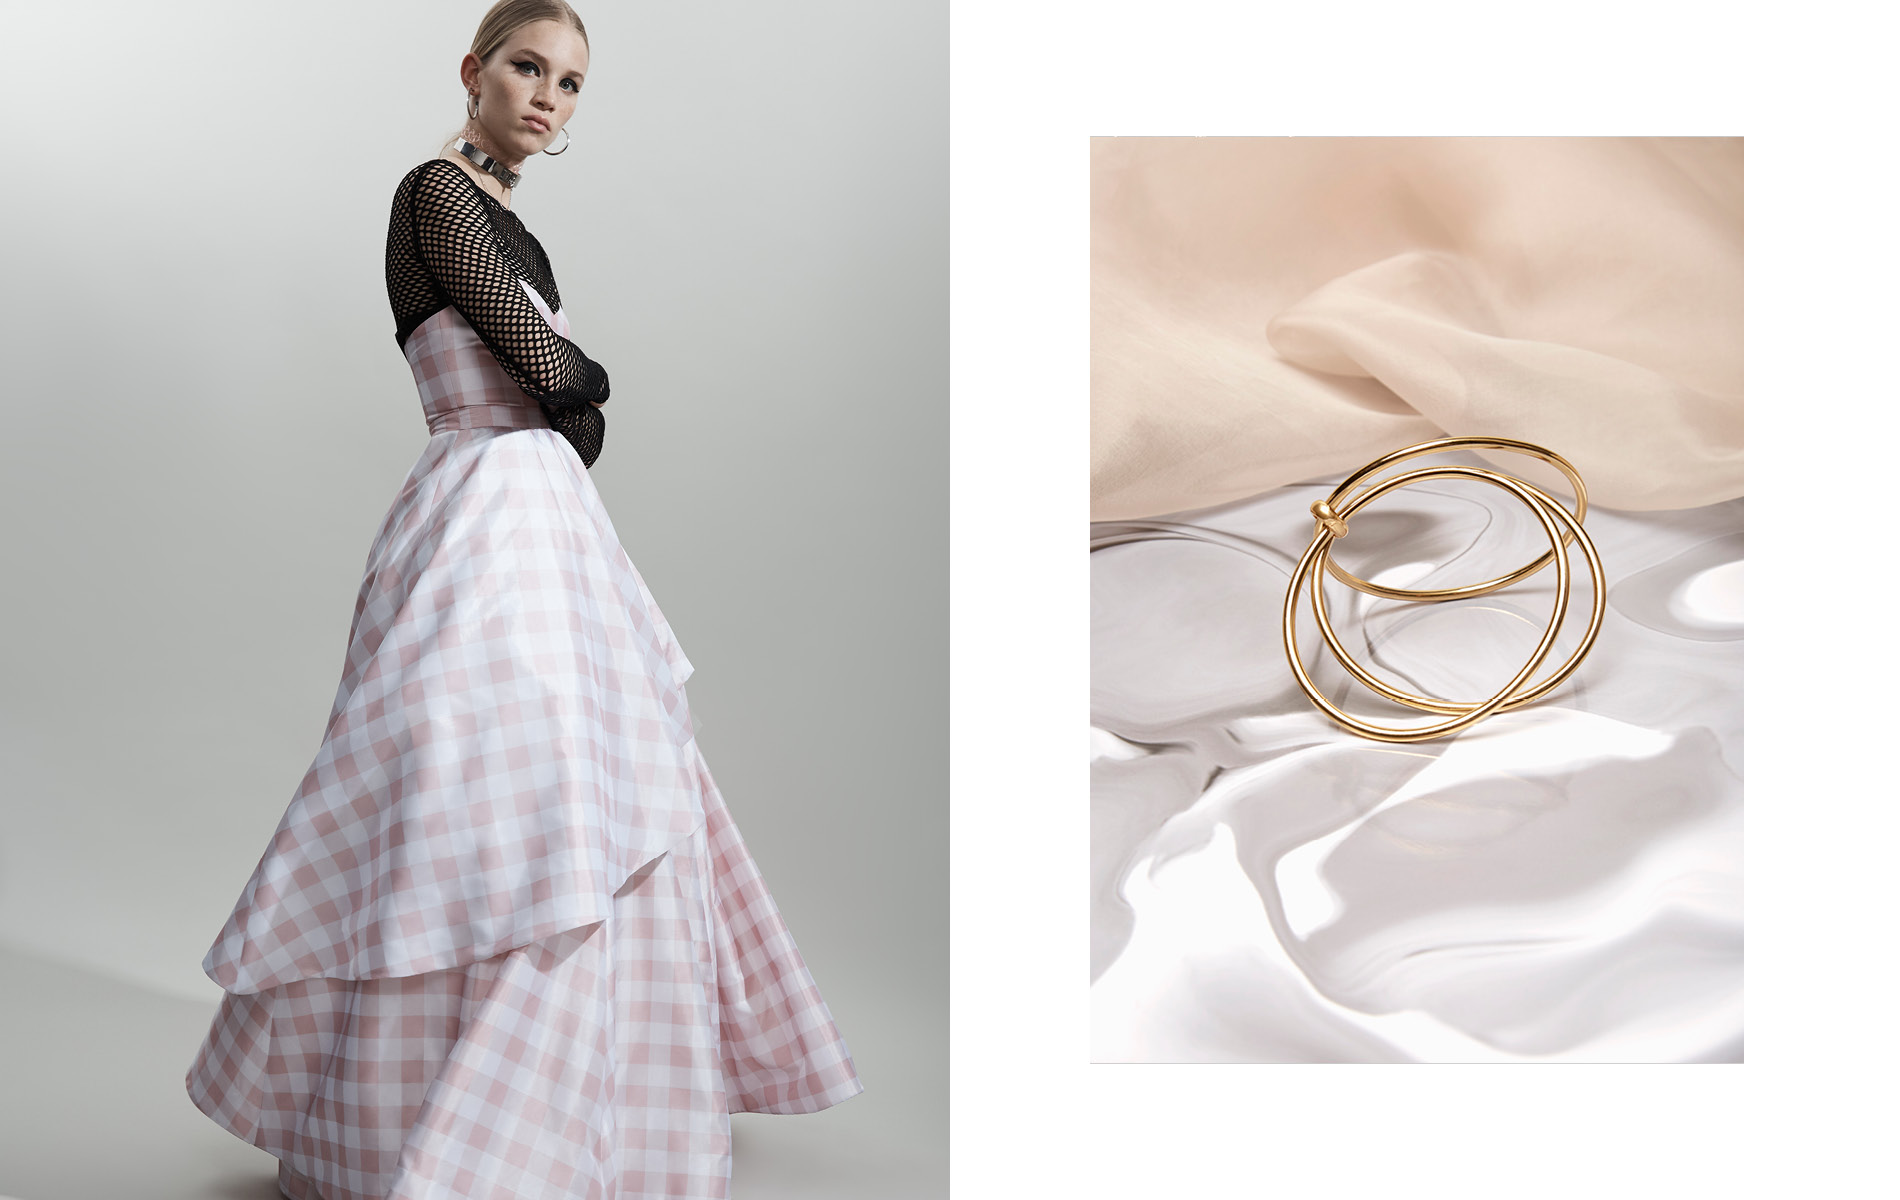 Creative content and imagery for clients in fashion and jewelry brand, Trademark Jewelry, by DTE